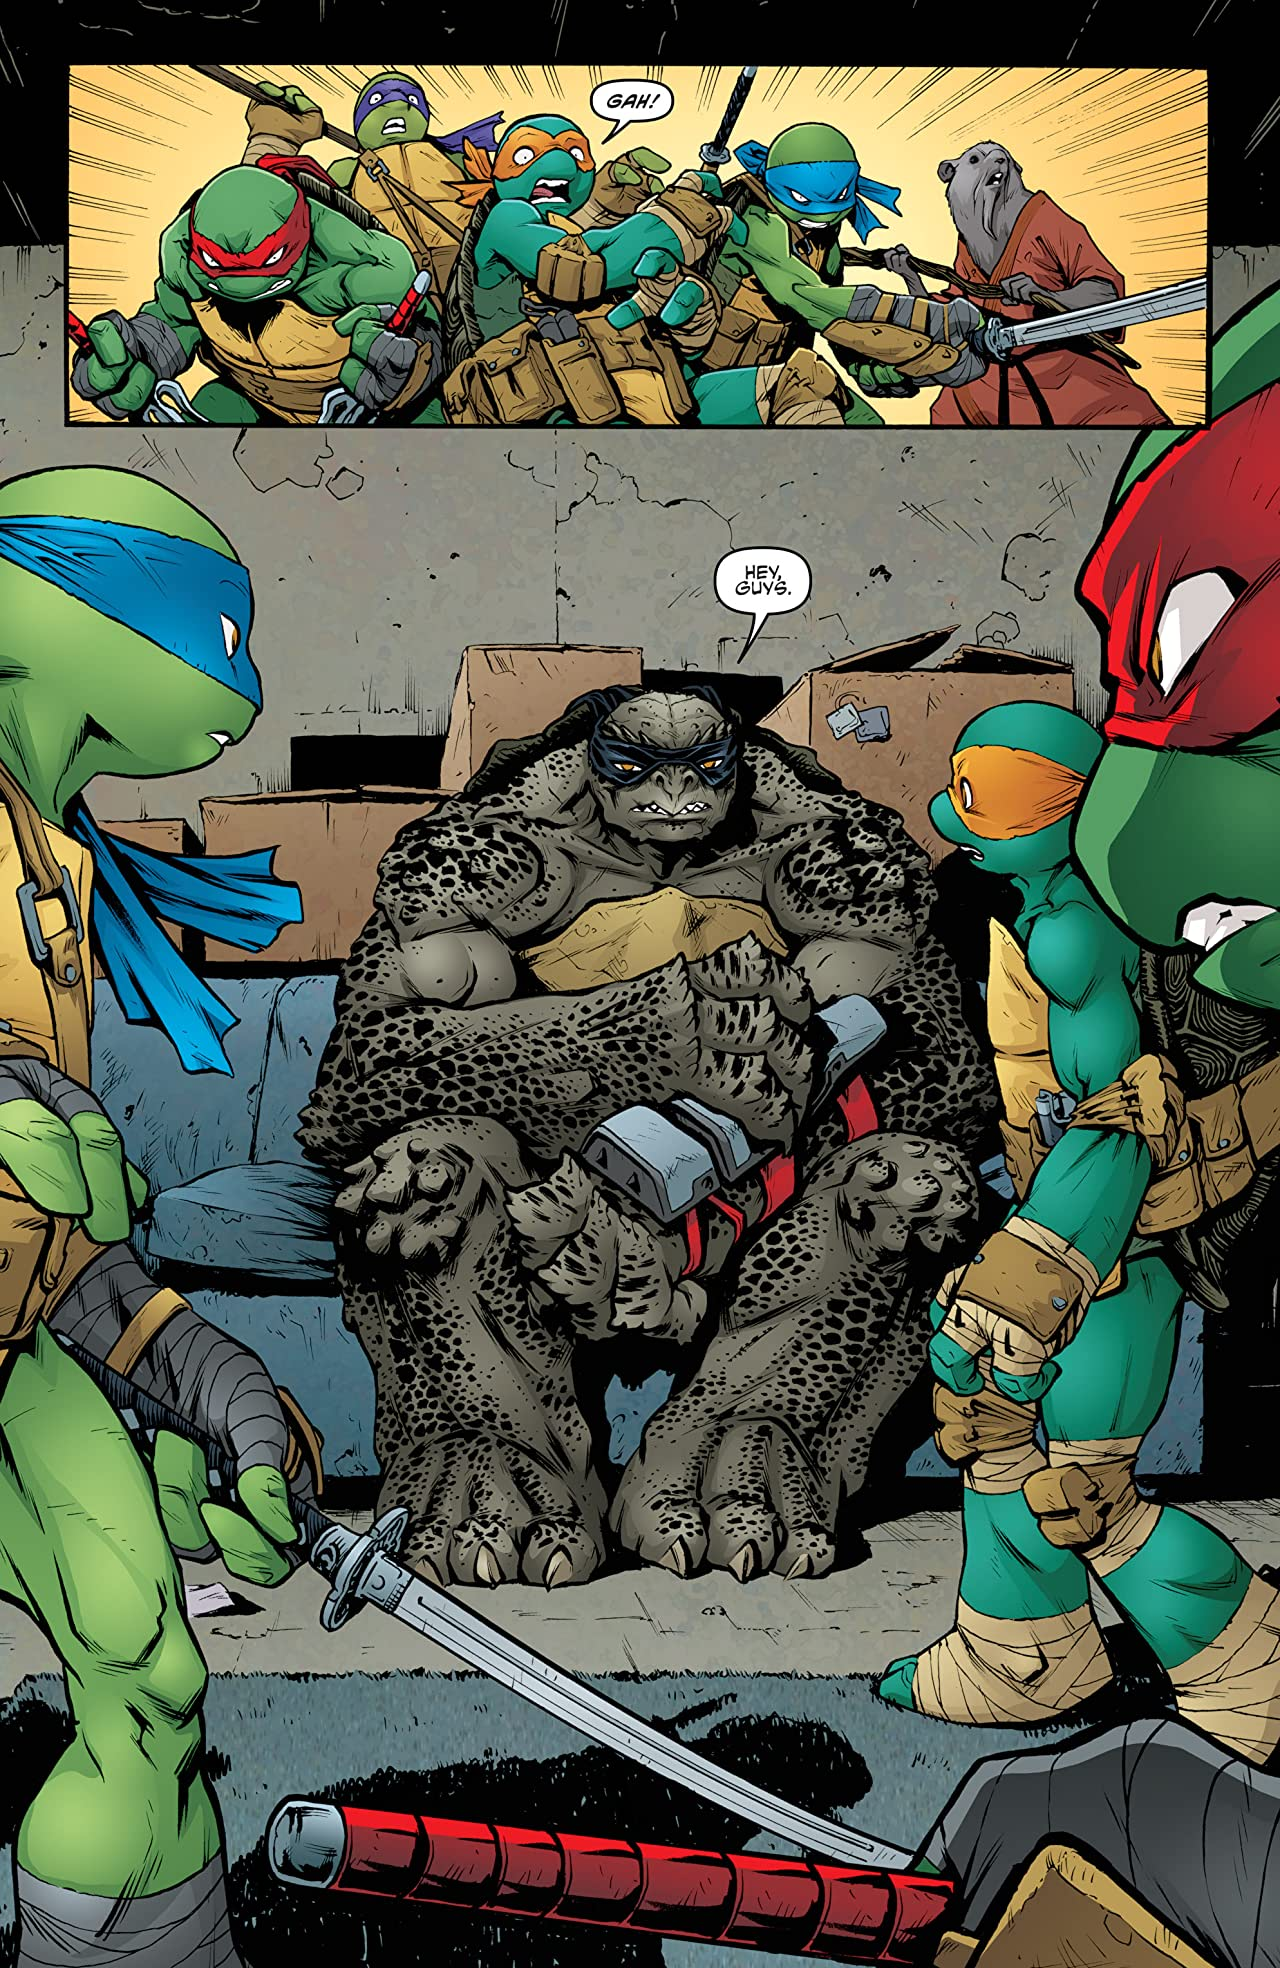 Teenage Mutant Ninja Turtles #38